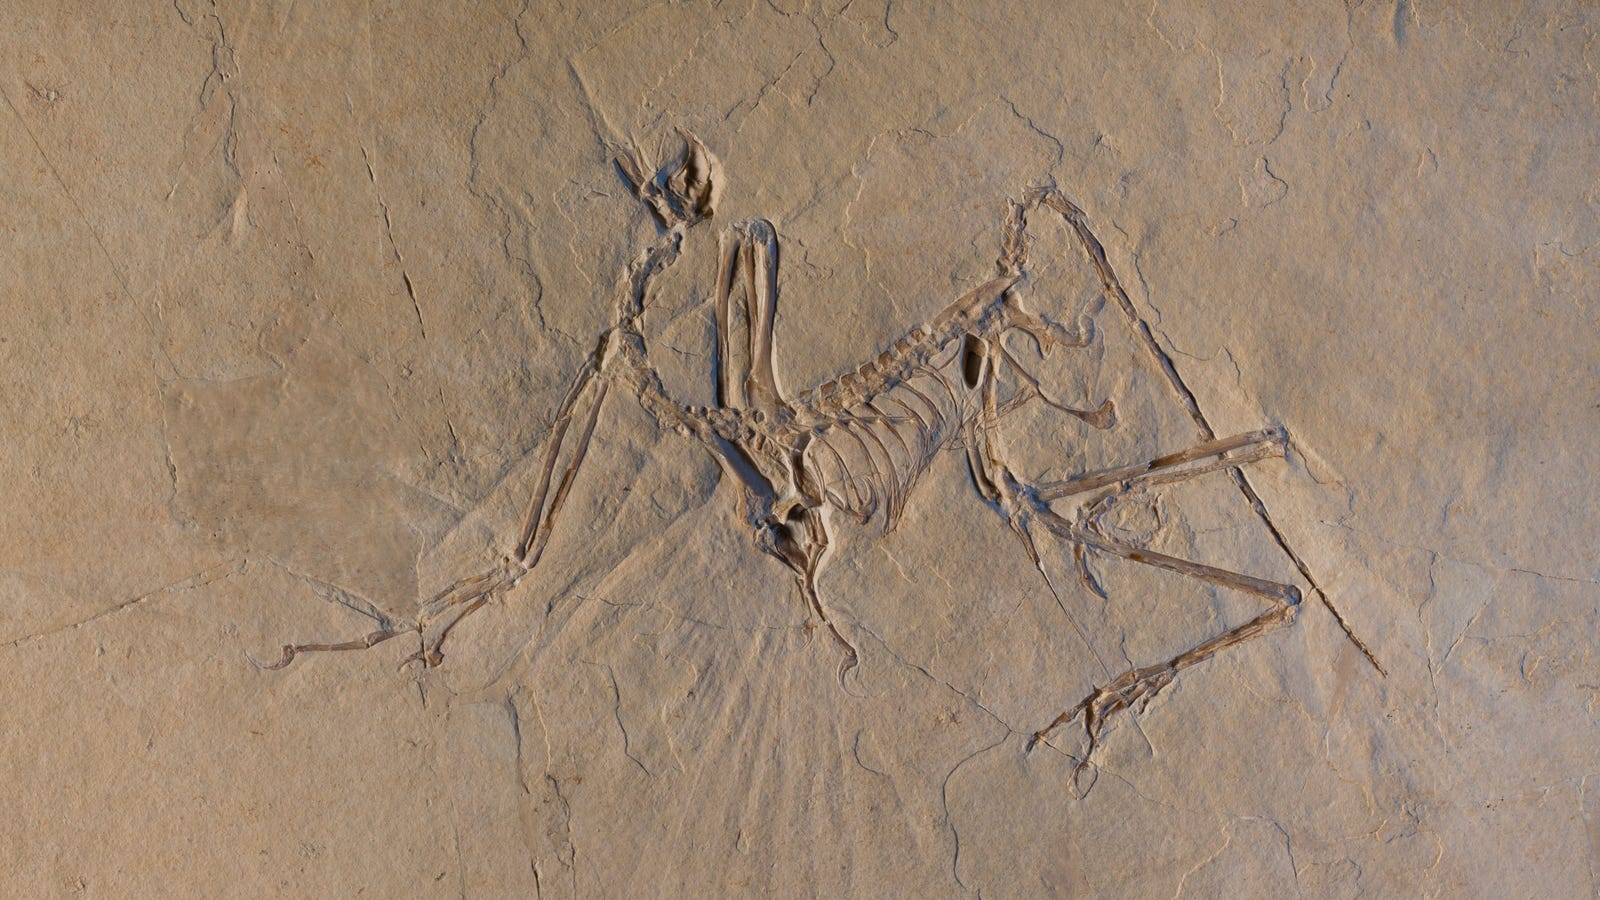 New Evidence Suggests Archaeopteryx Could Fly—We Just Don't Know How